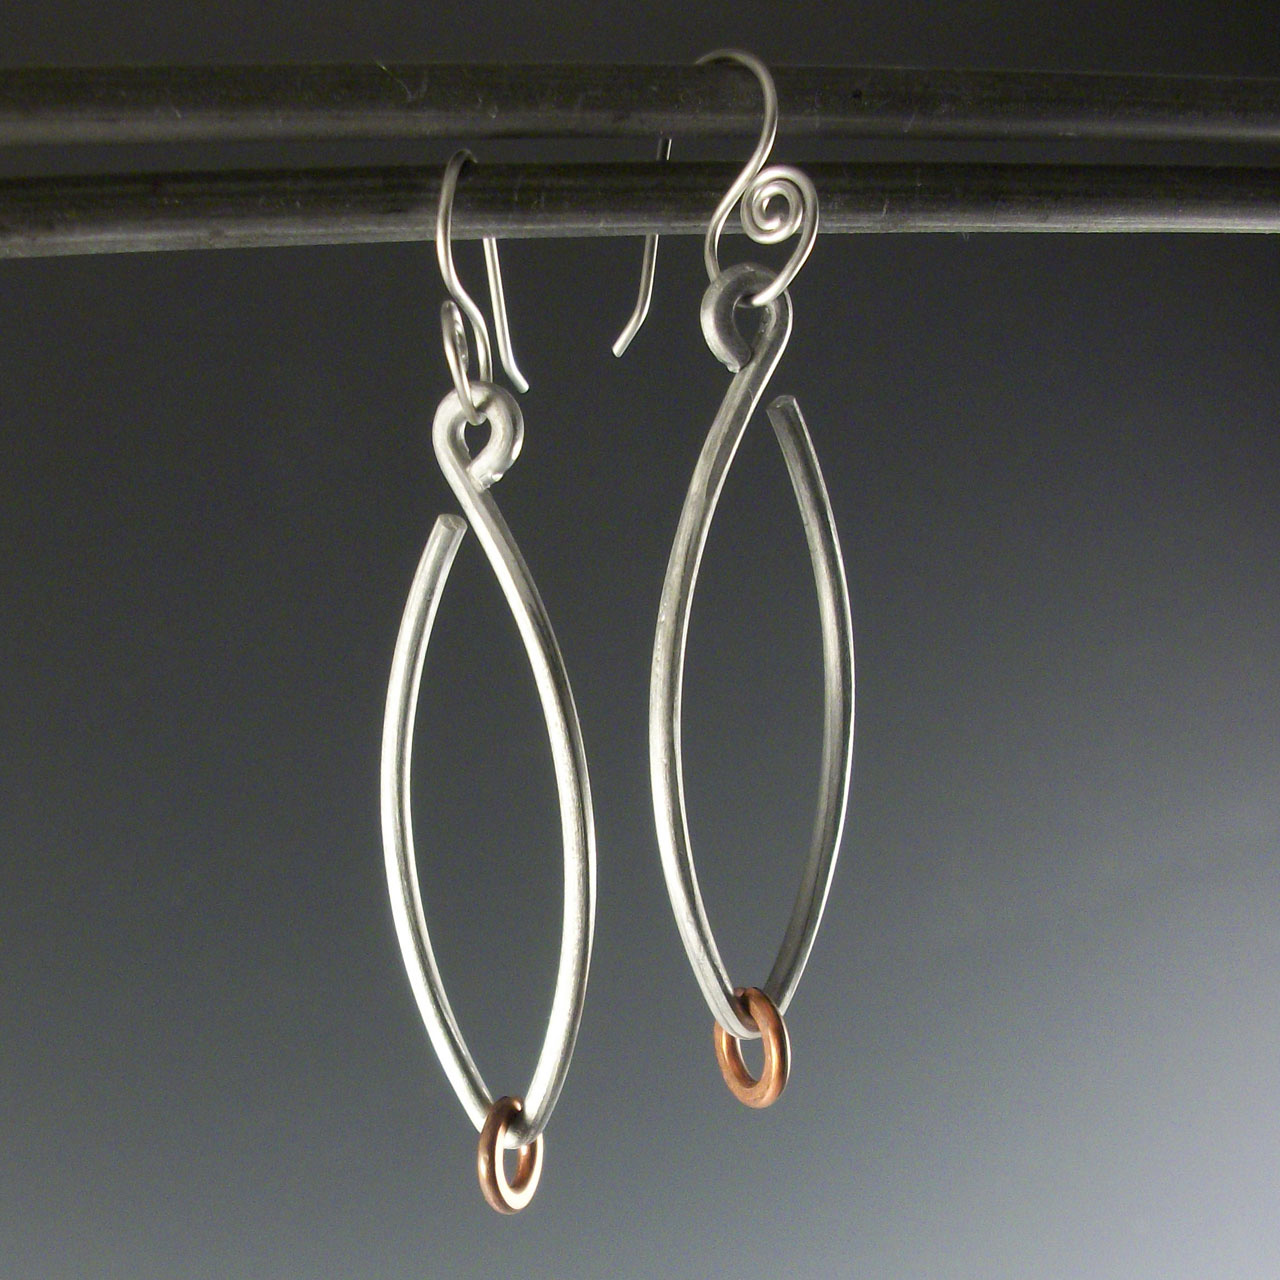 Aluminum Drips Earrings by Mckenna Hallett